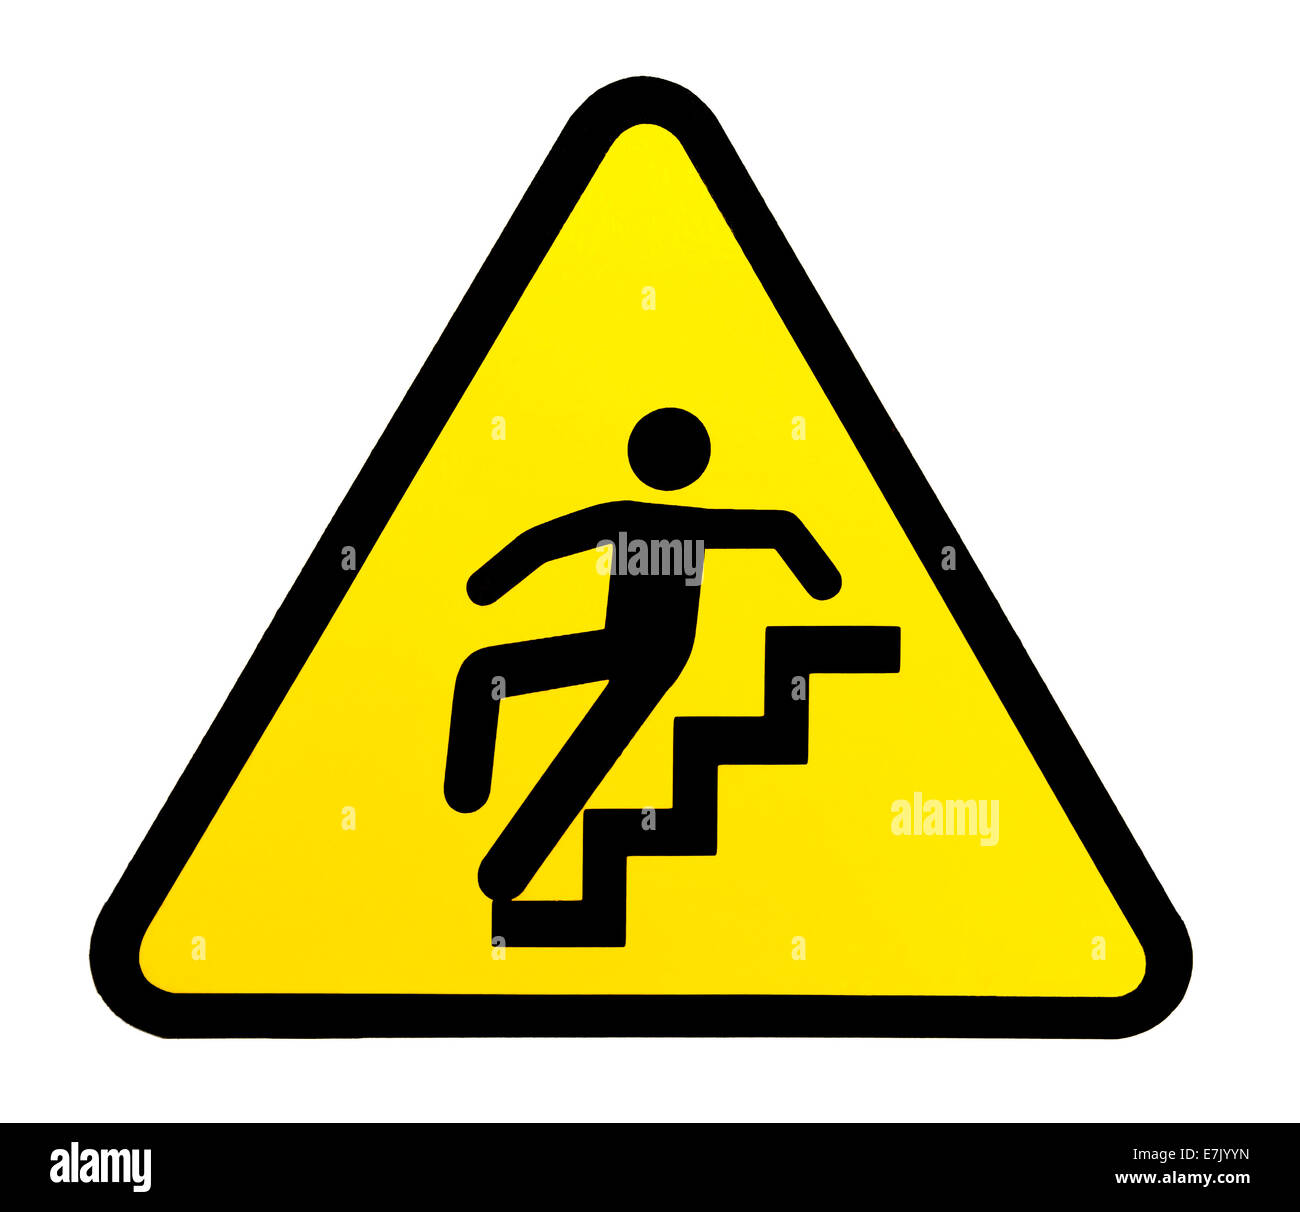 Yellow triangular sign warning for slippery stairs when wet - Stock Image